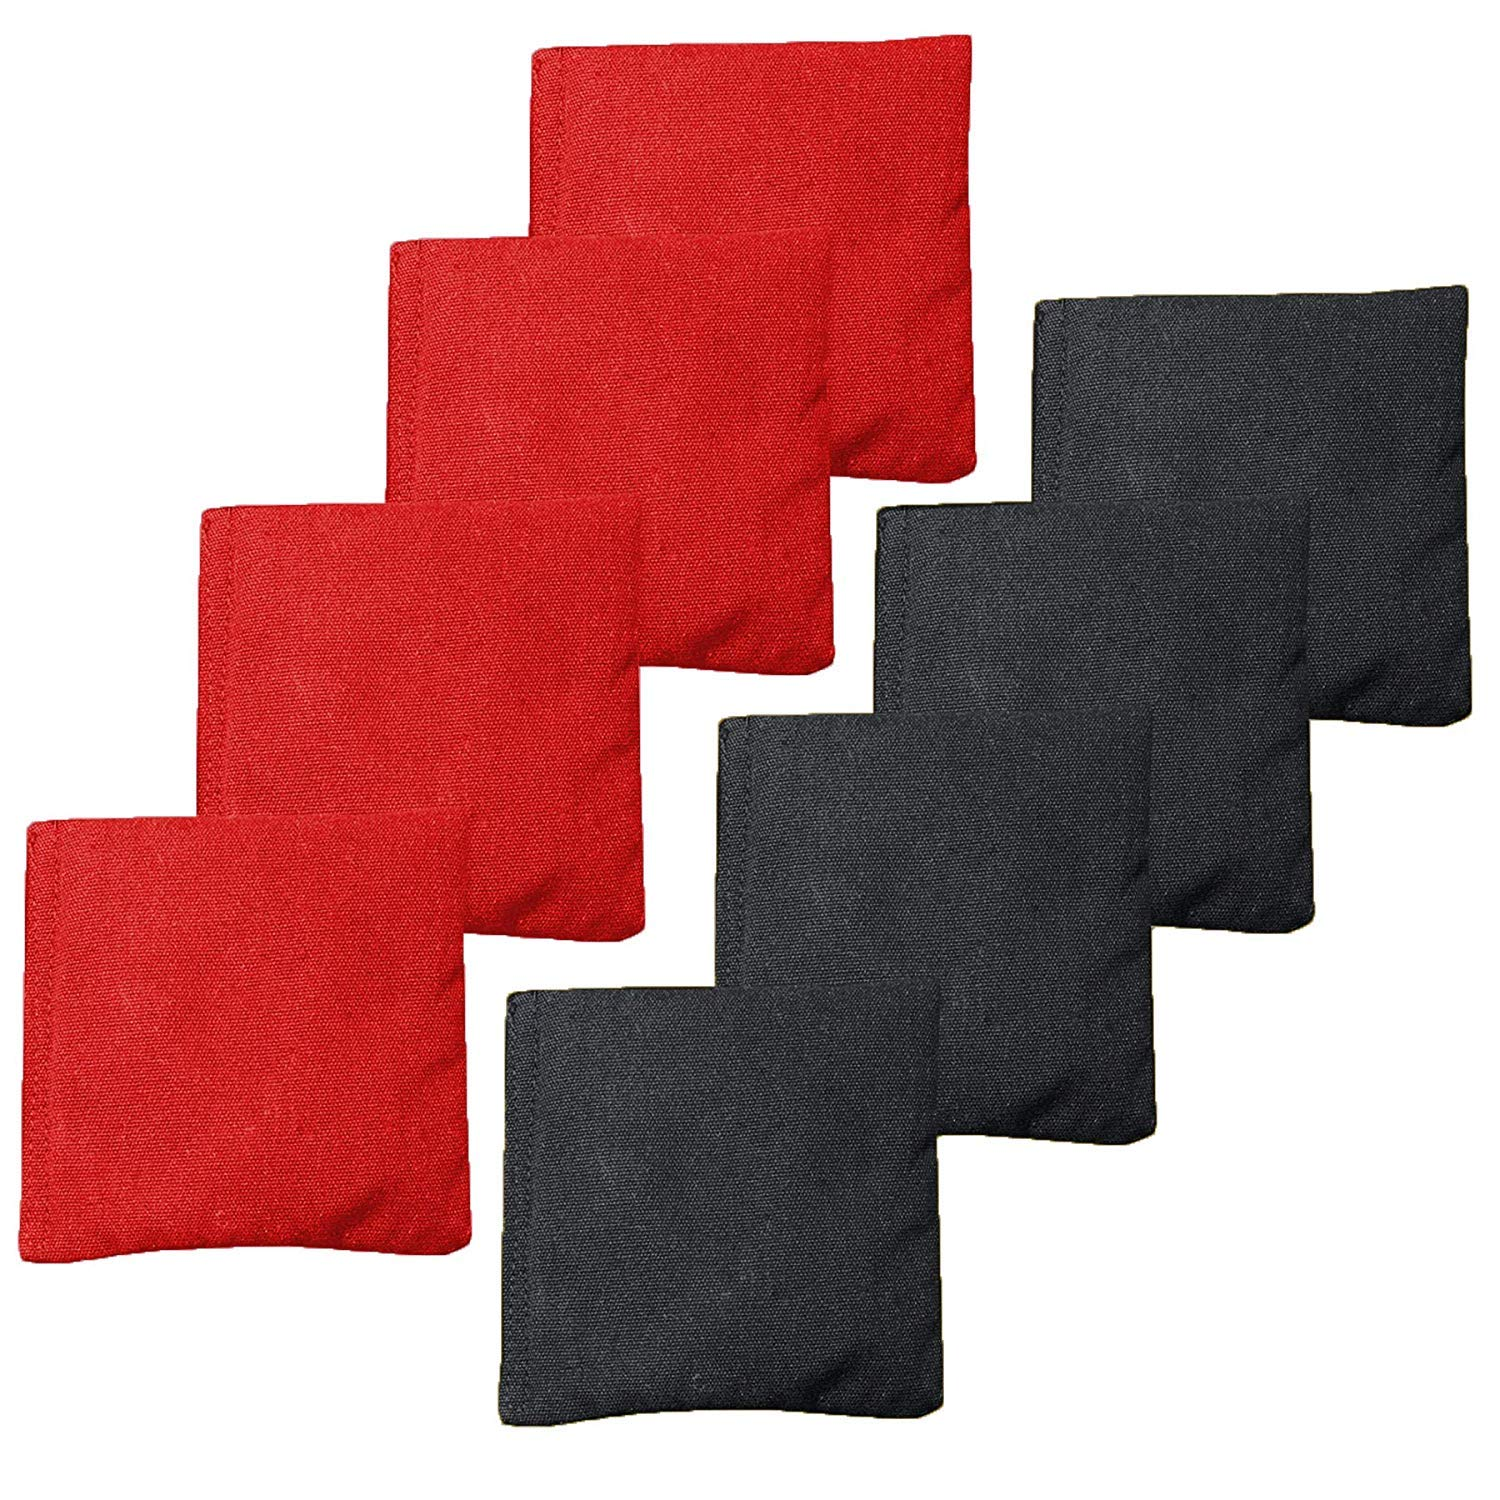 Weather Resistant Cornhole Bean Bags Set of 8 - Duck Cloth - Regulation Size & Weight - Red and Black